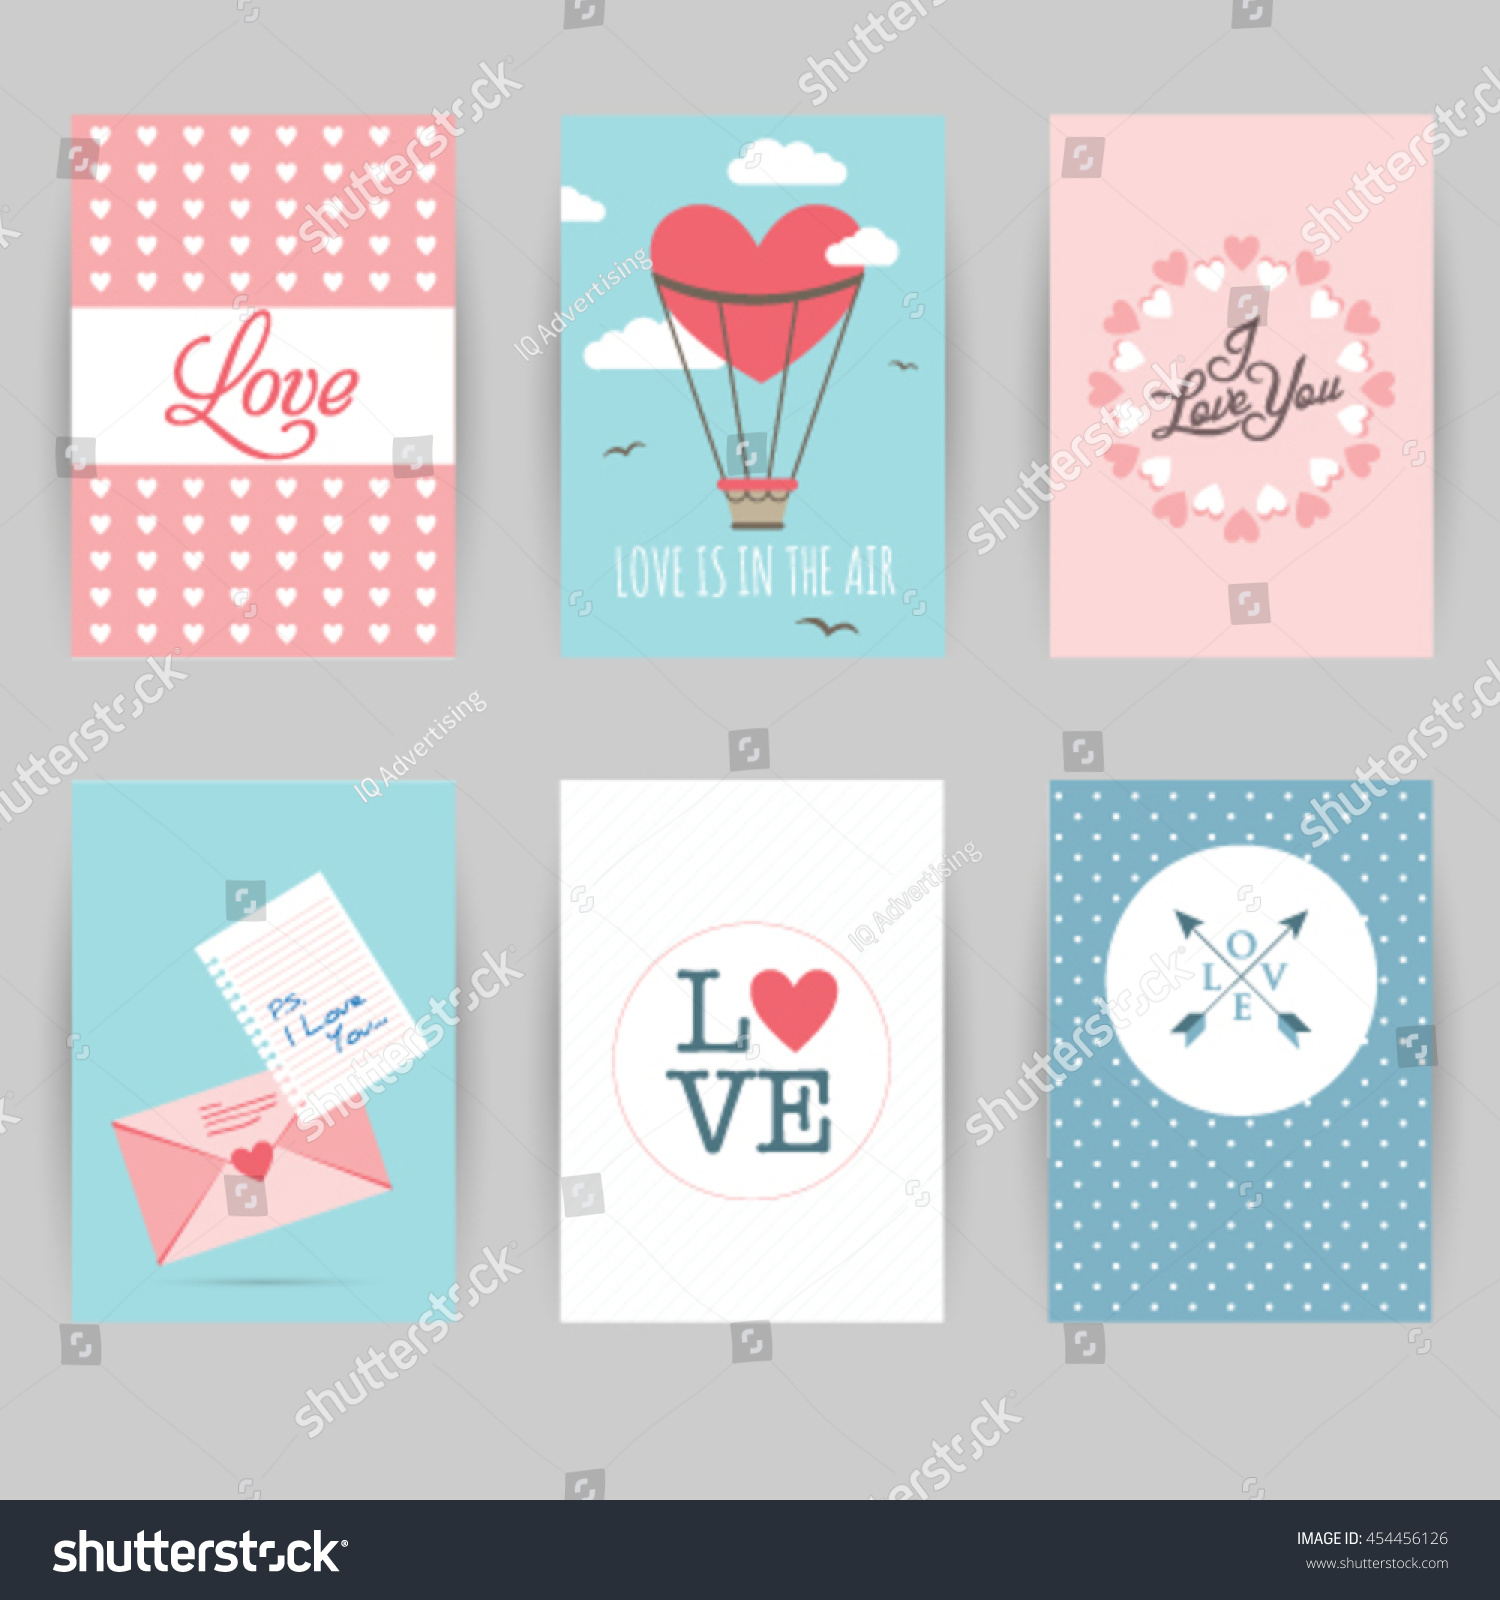 Greeting Card Banner Love Invitation Card Stock Vector Royalty Free